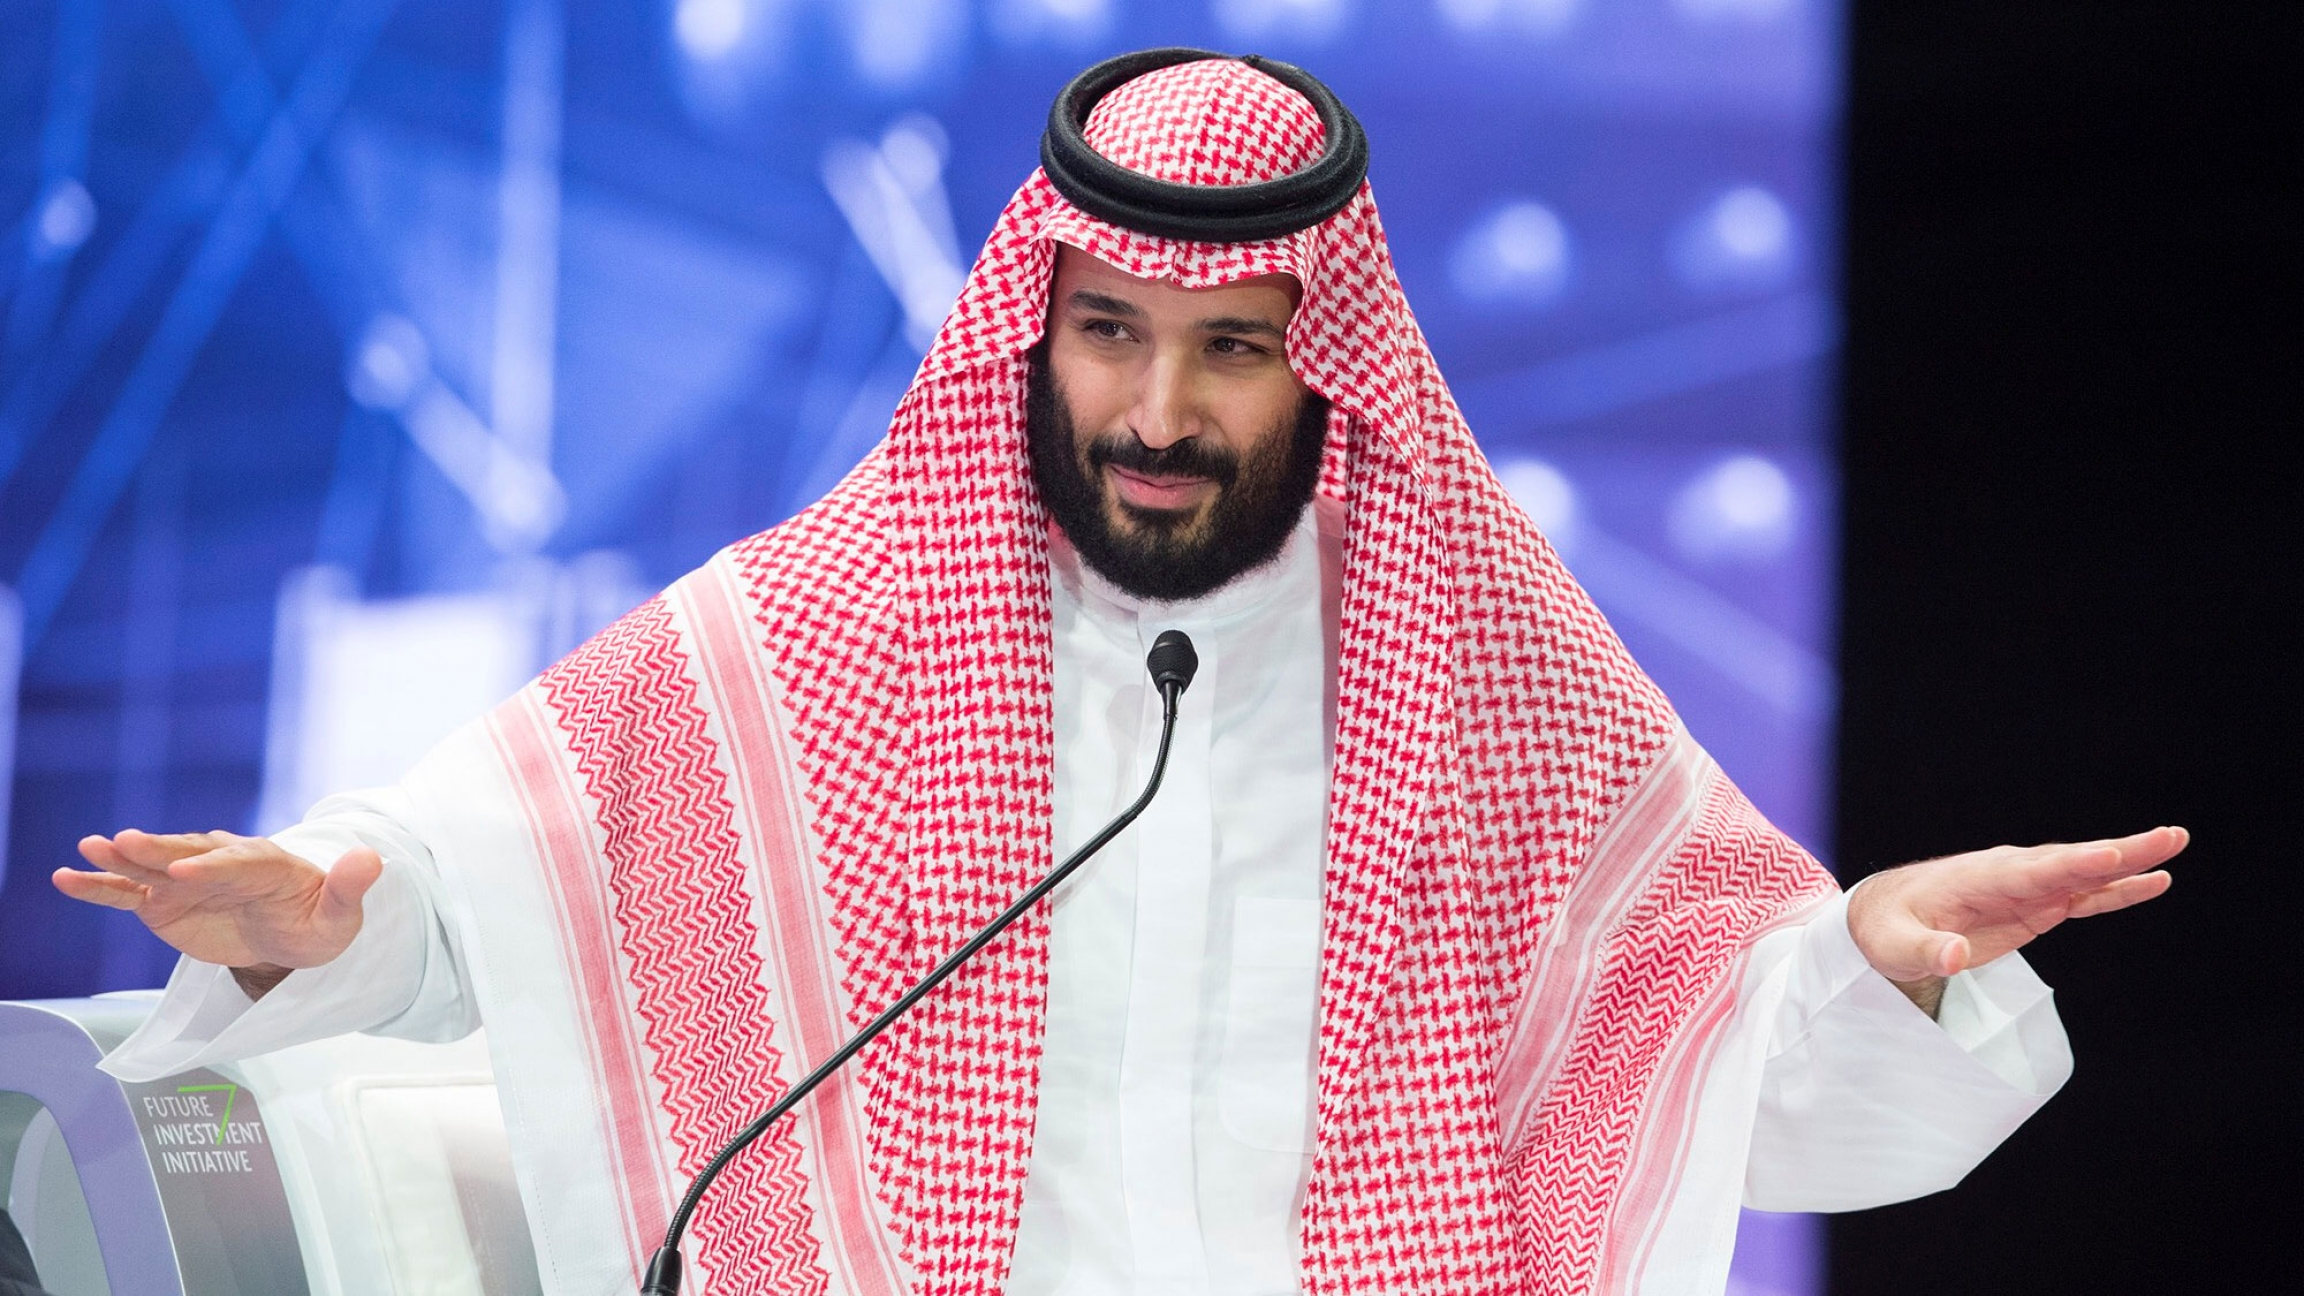 Crown Prince Mohammad bin Salman is picture with his hands outstretched, talking at a microphone